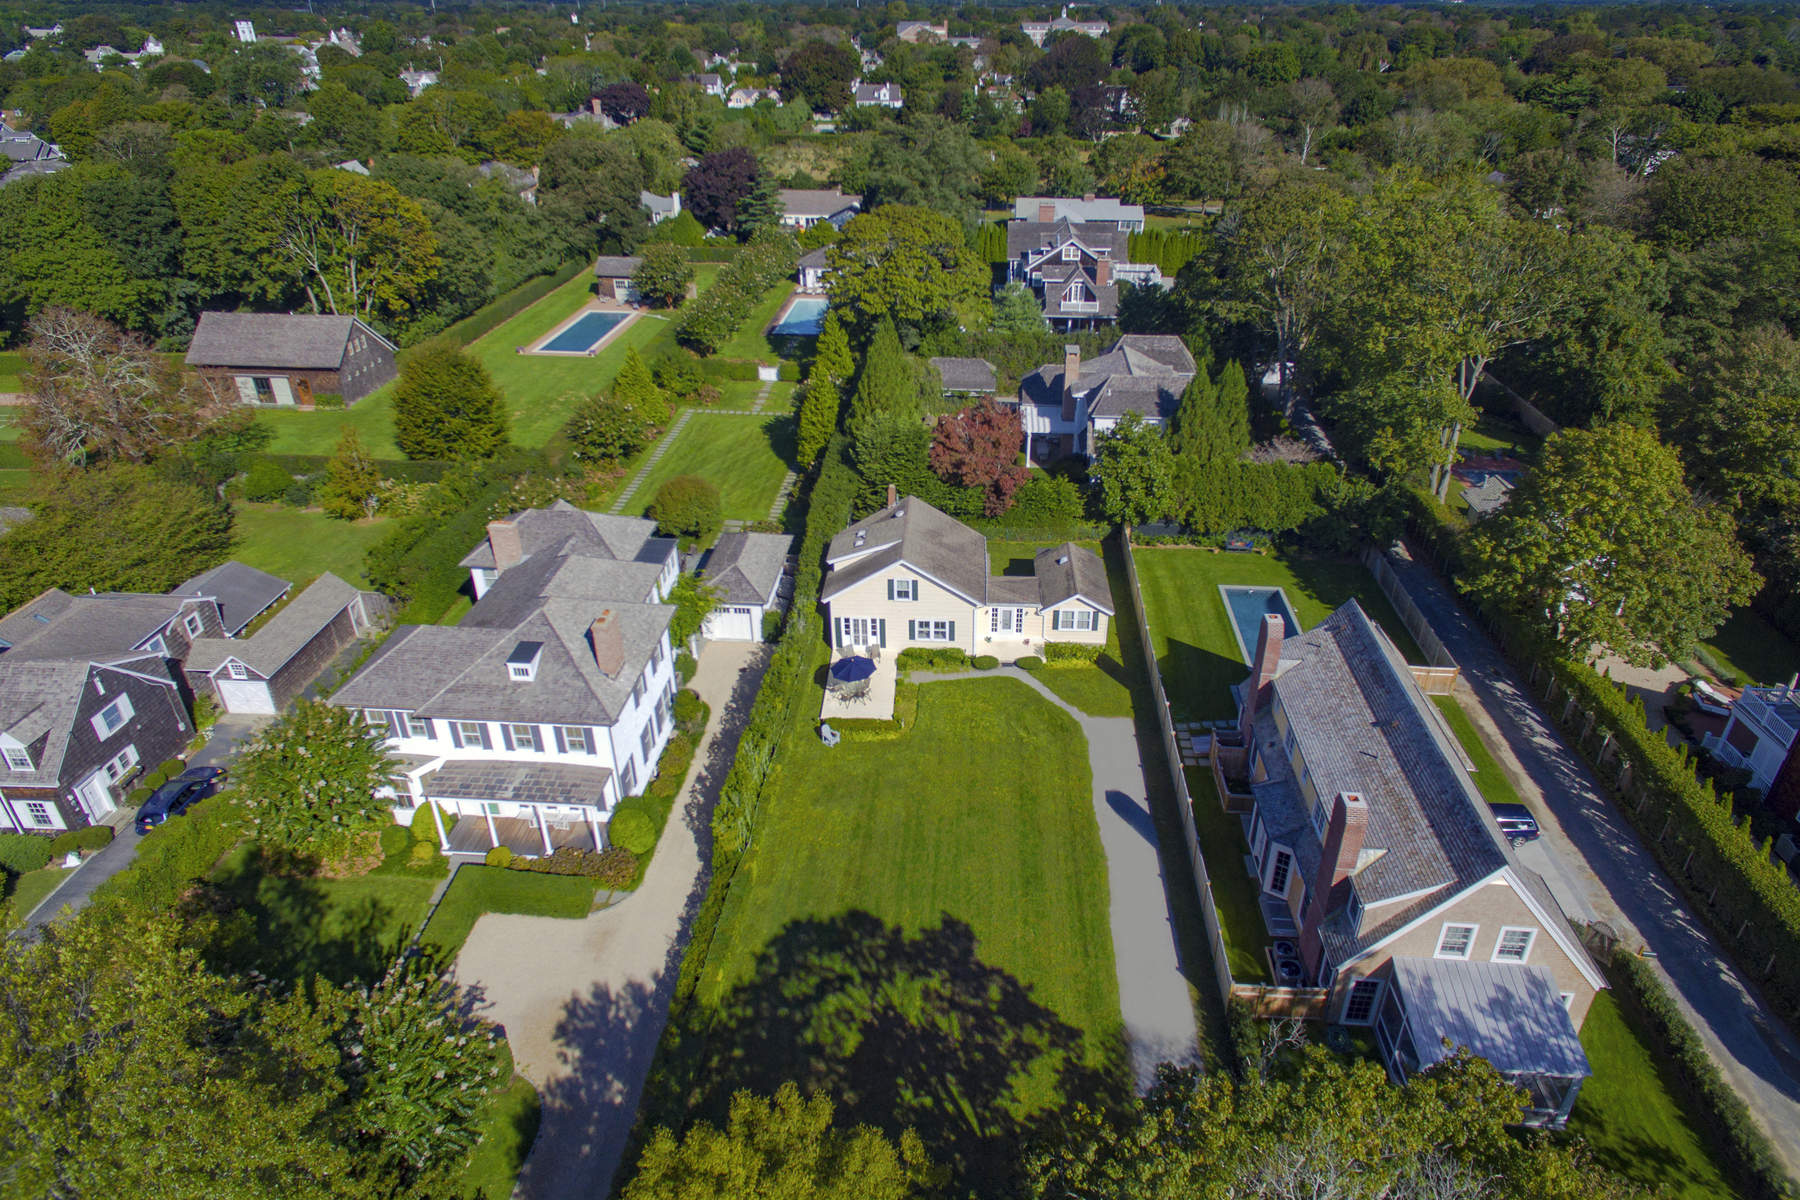 Single Family Home for Sale at Trophy Location on Toylsome - SH Village 109 Toylsome Lane, Southampton, New York, 11968 United States